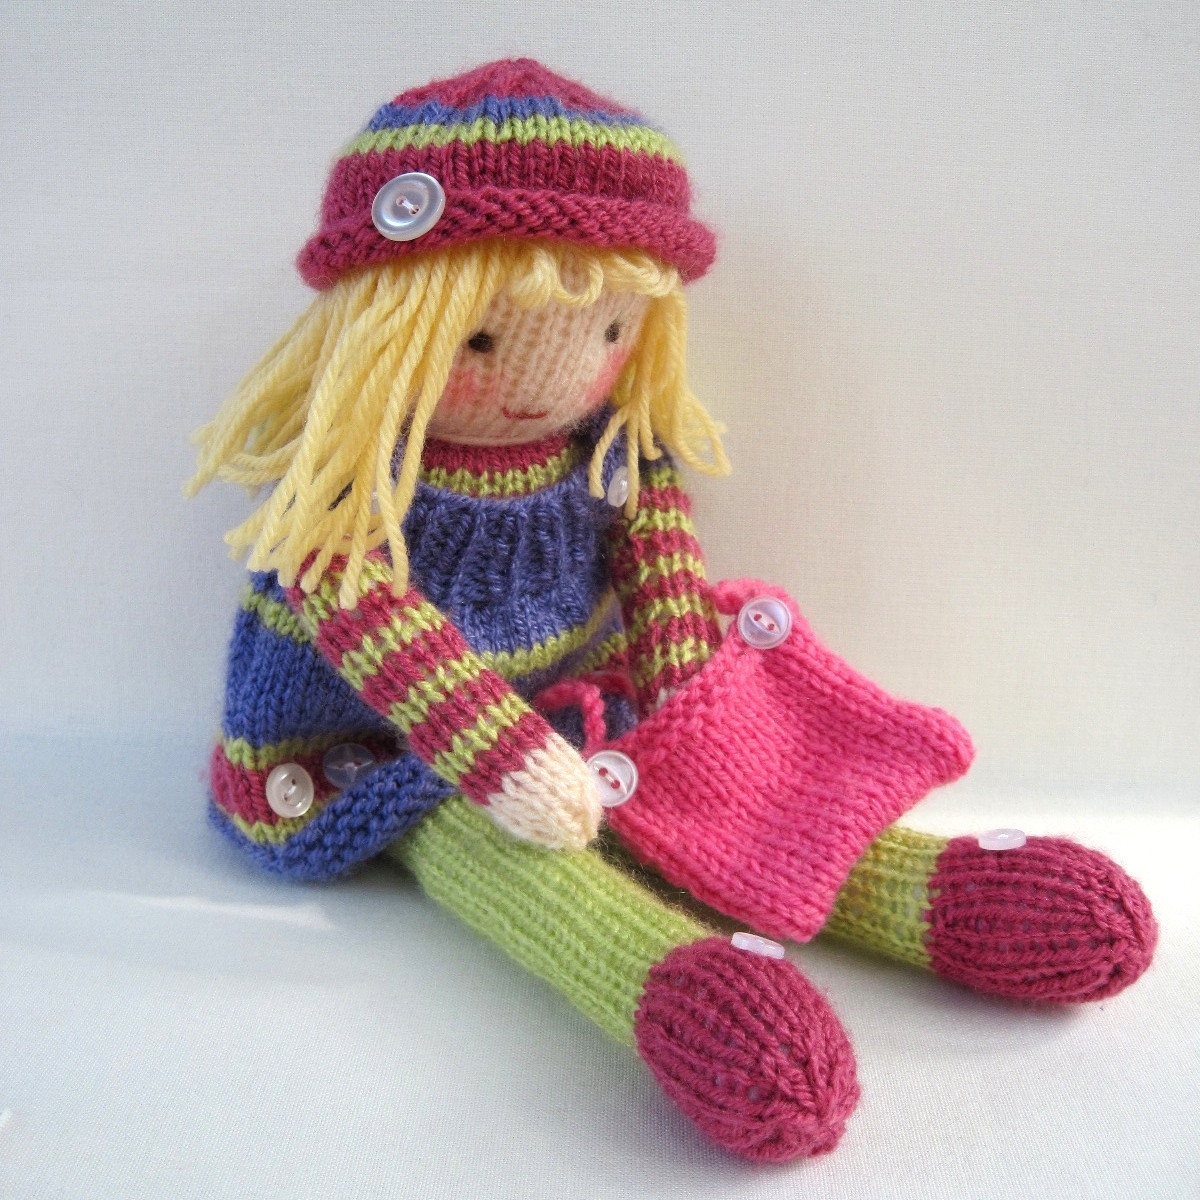 Betsy button knitted doll